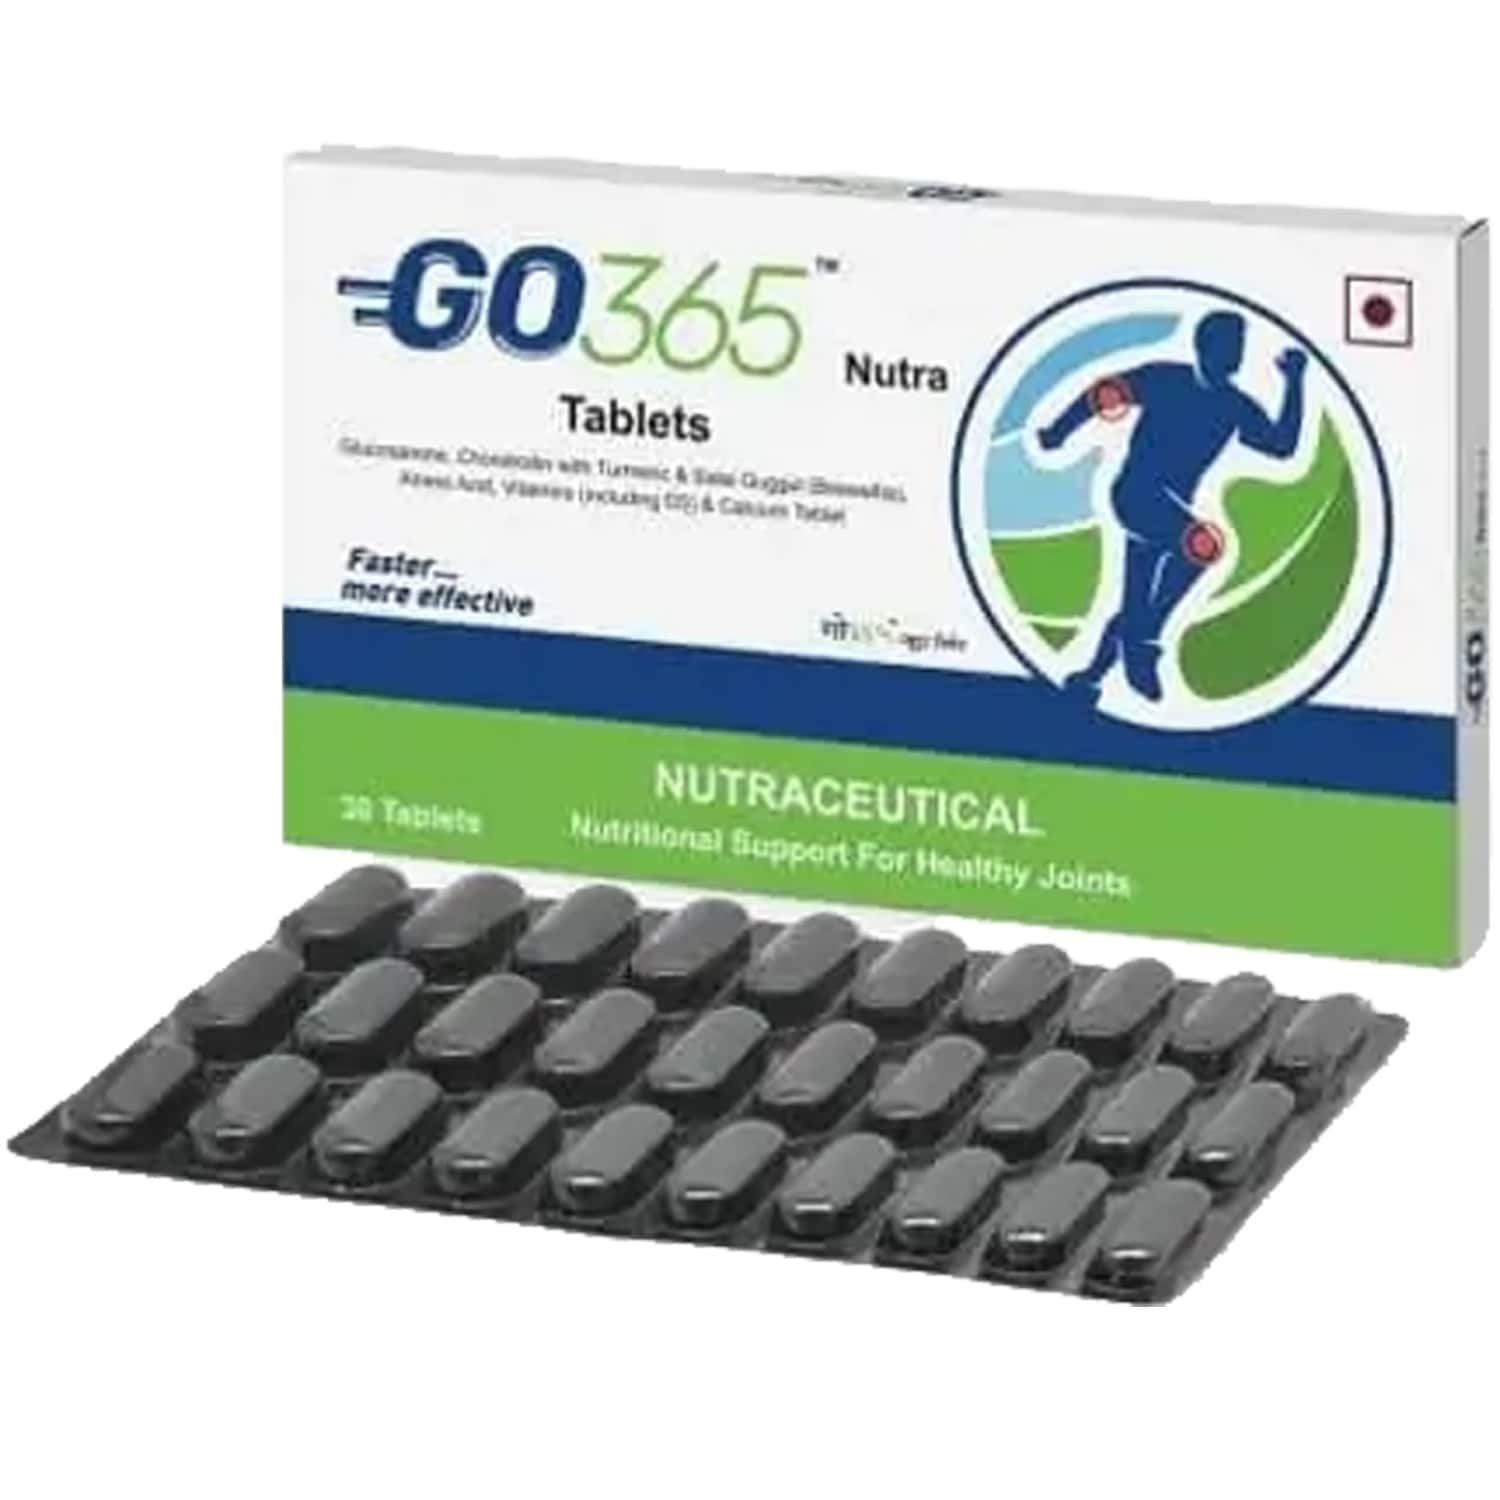 Go365 Nutra Nutraceutical Tablets Box Of 30